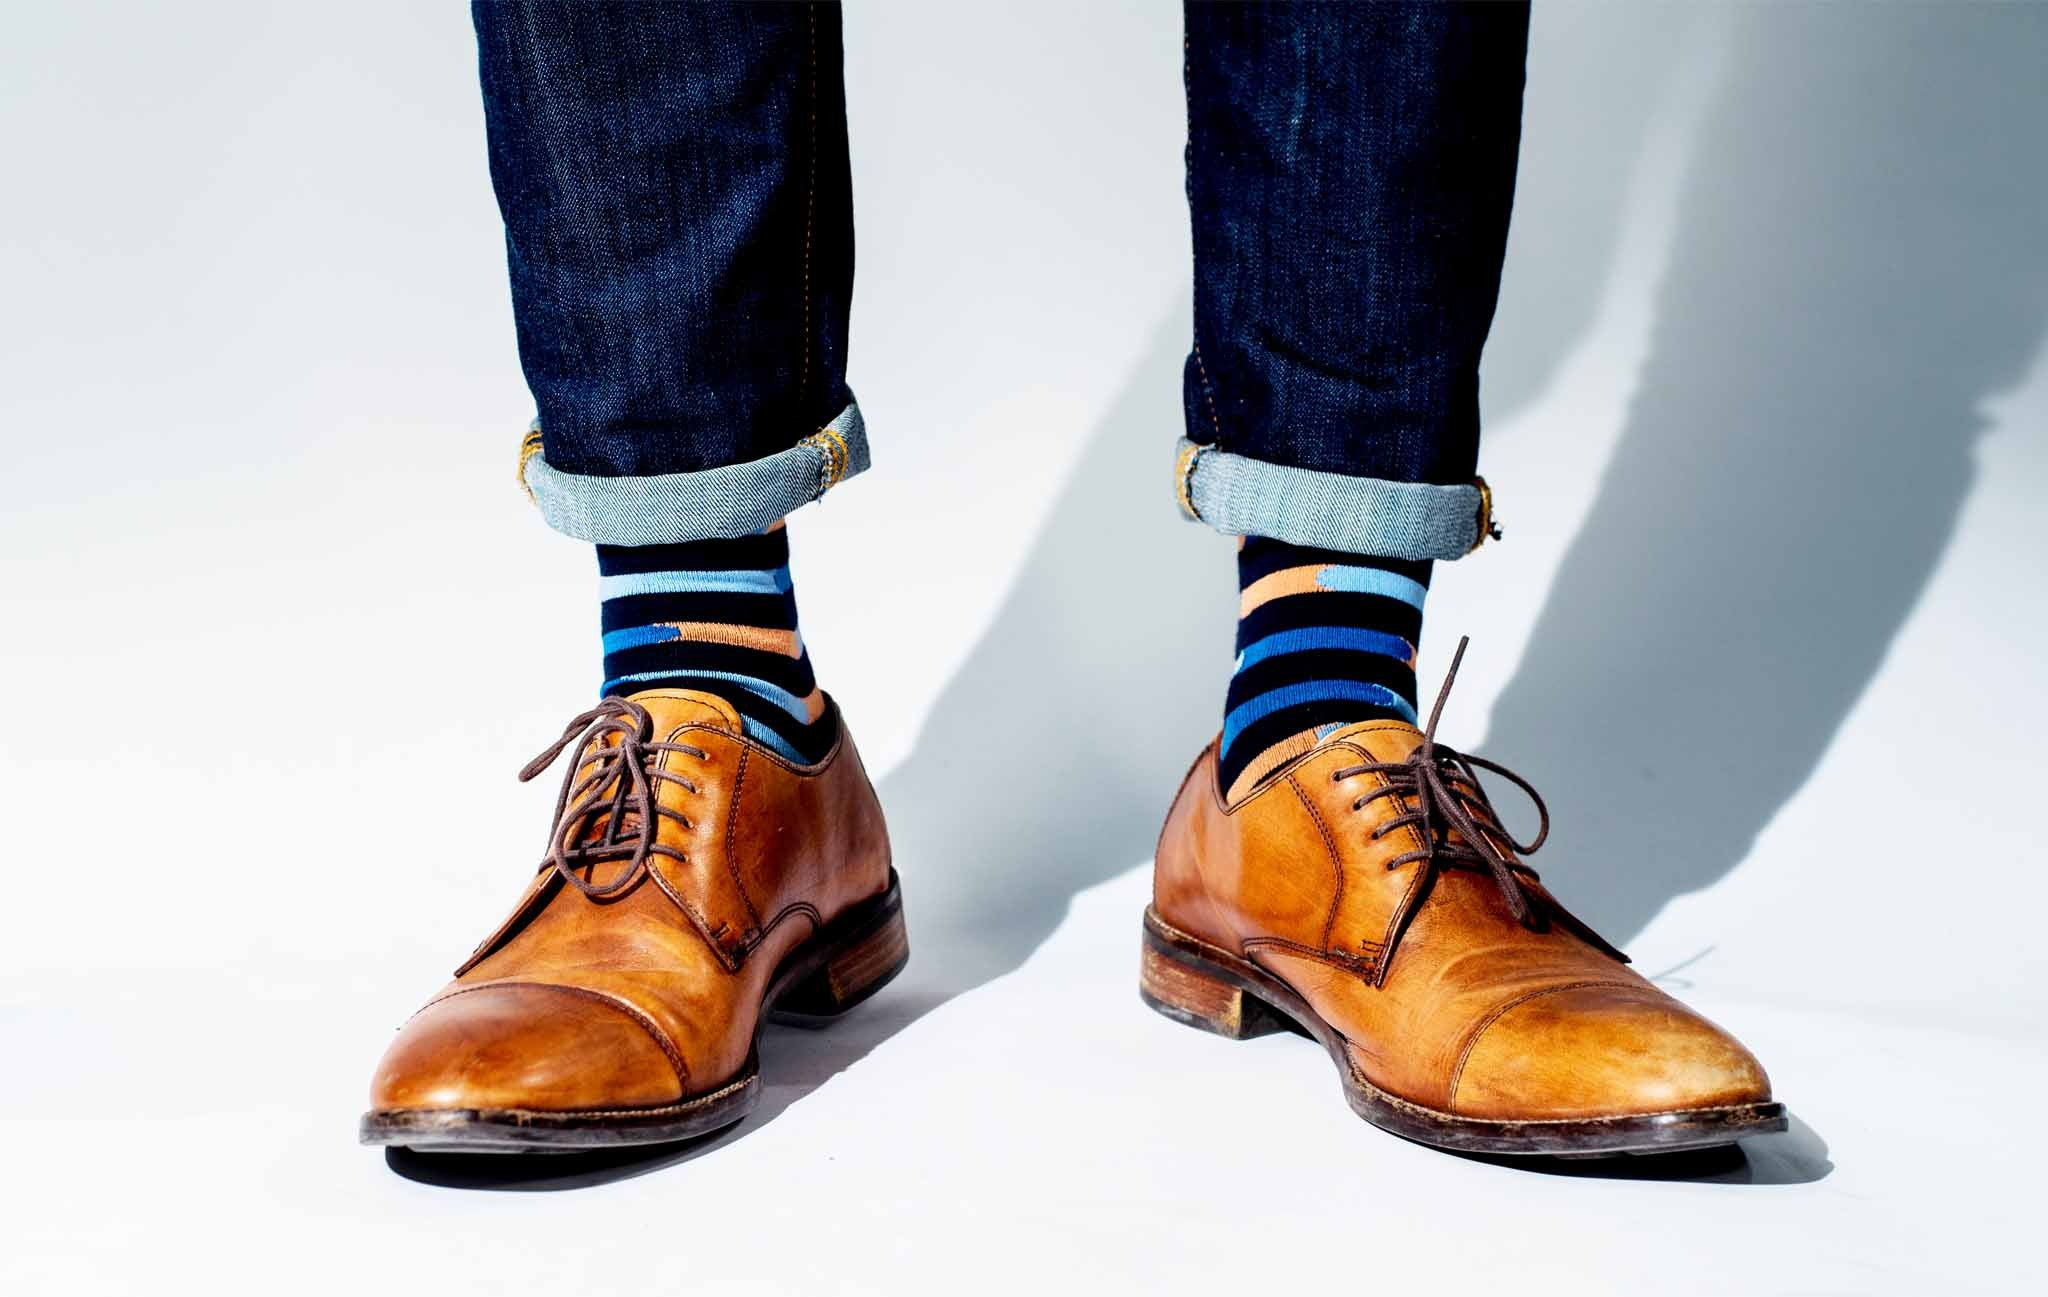 Striped black, light blue, dark blue and peach socks with brown shoes and jeans